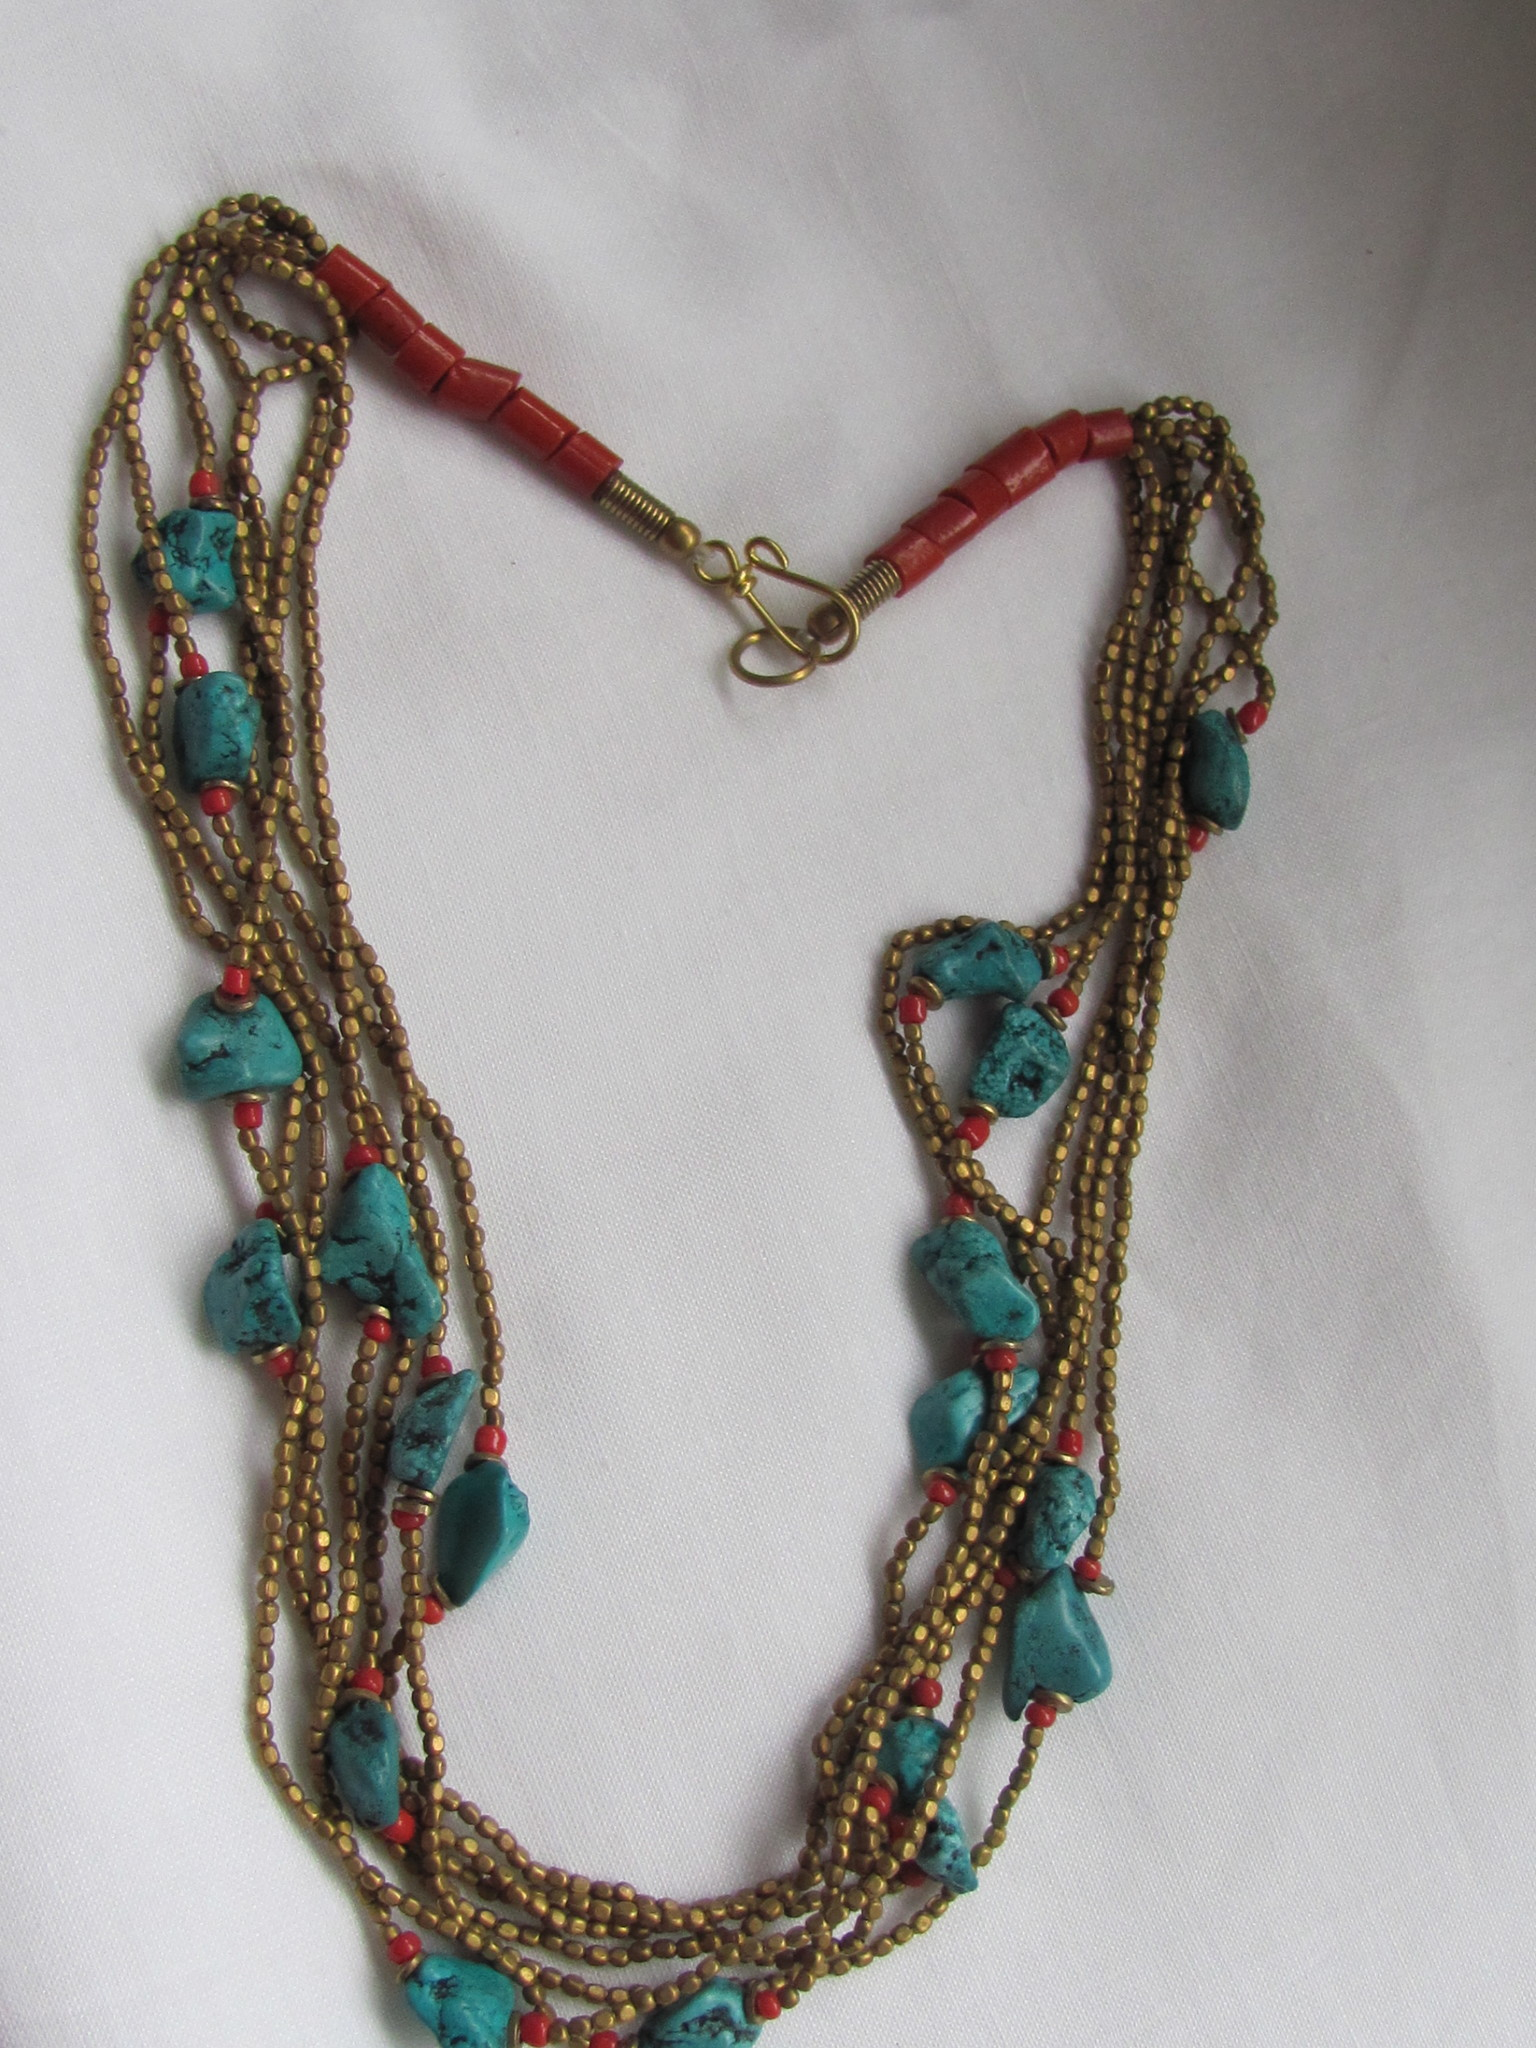 Necklace from brass with imitation turquoise and coral